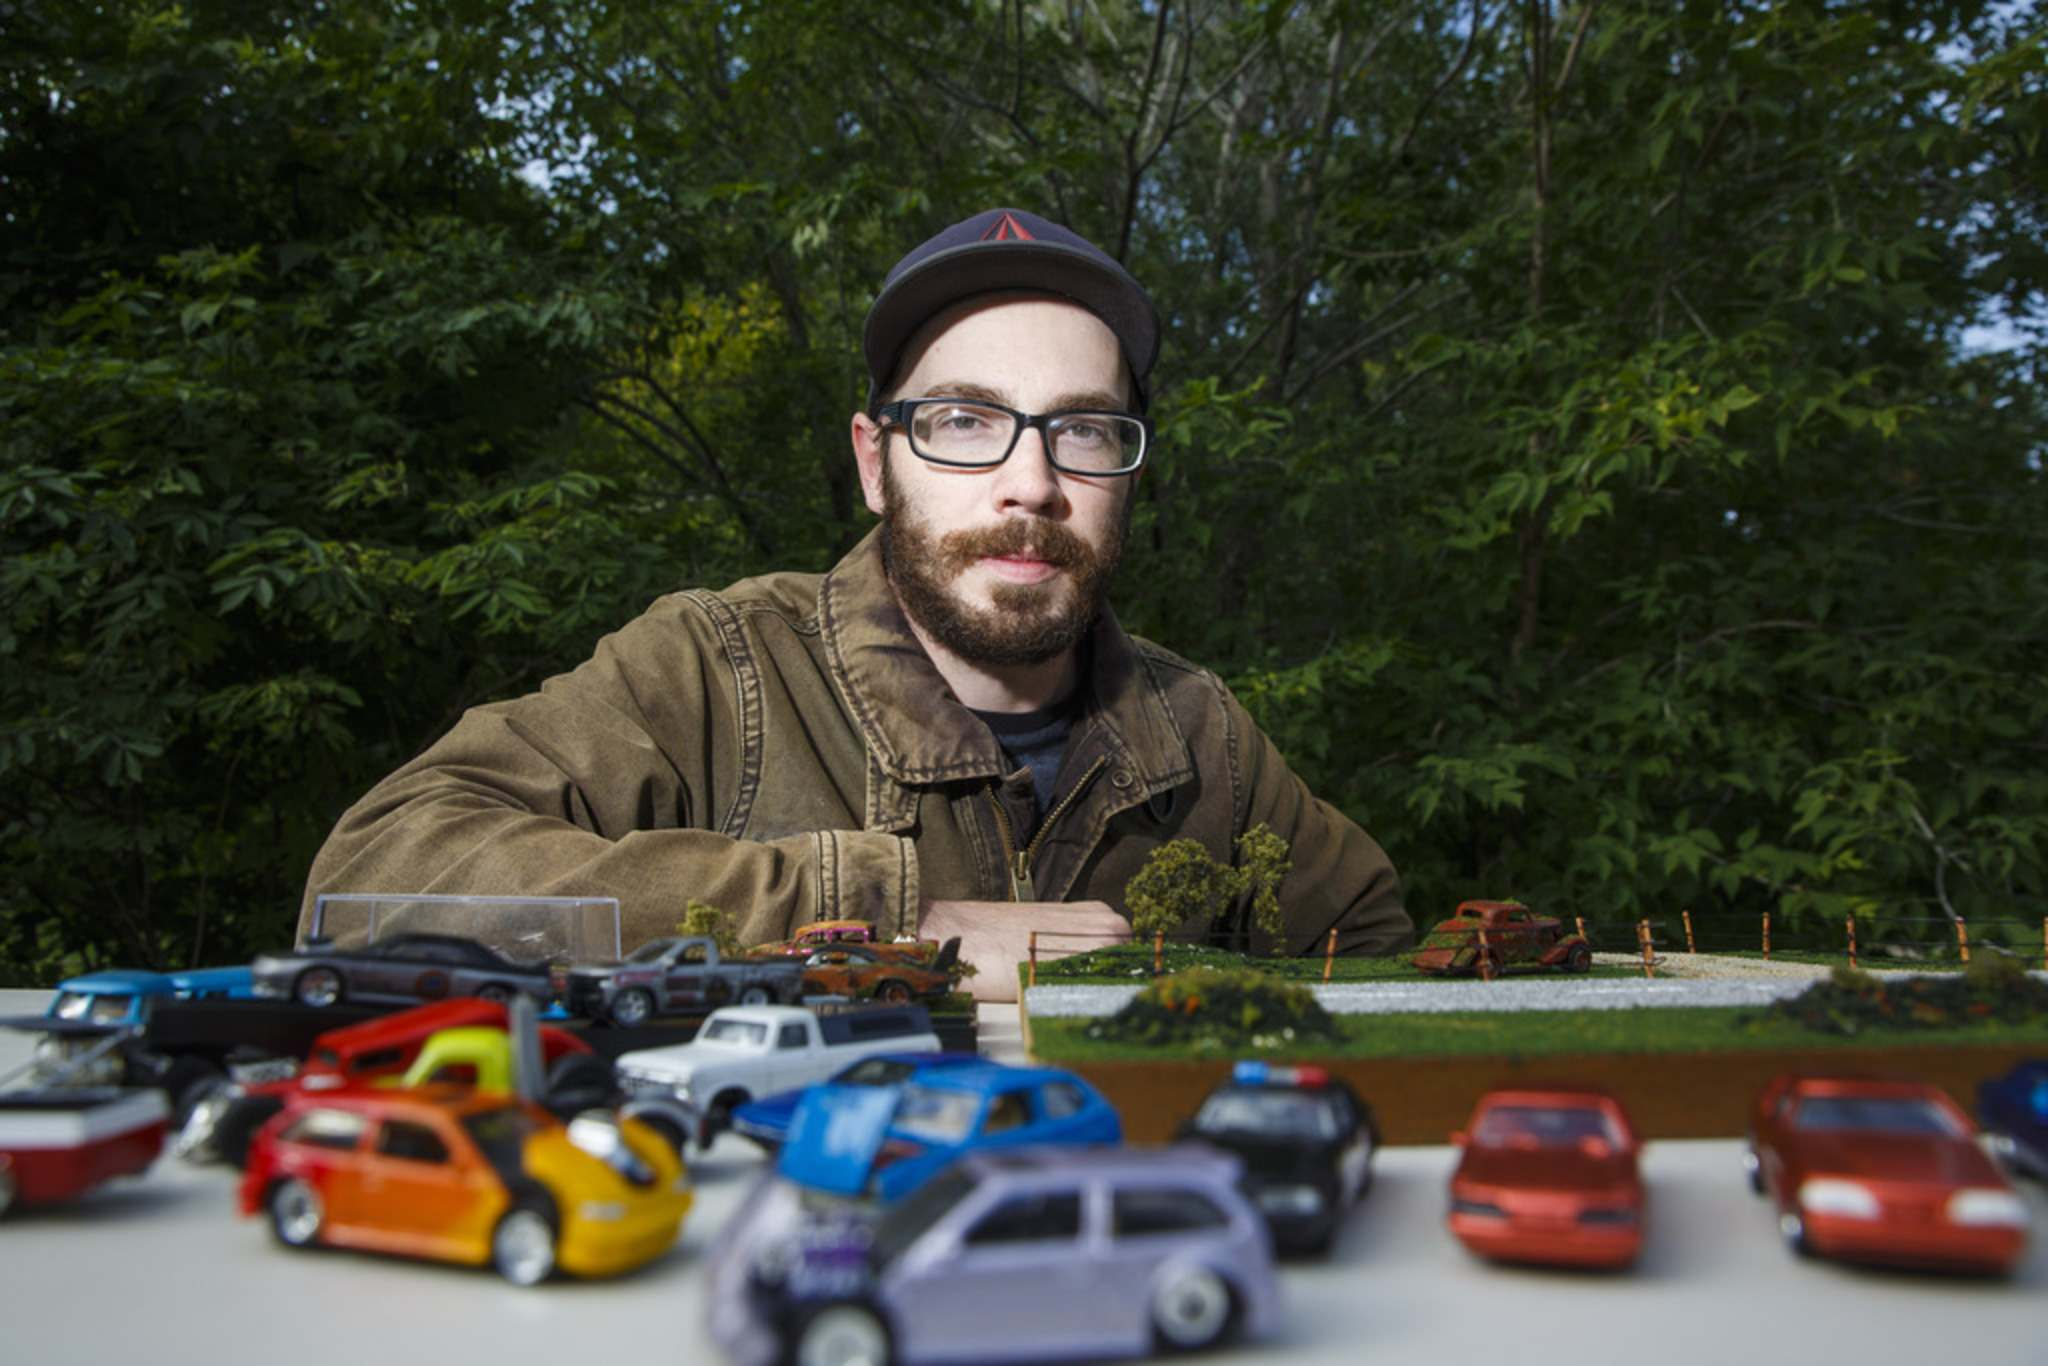 Daniel Walker collects and customizes Hot Wheels, swapping out tires, inserting engines, and repainting them.</p>